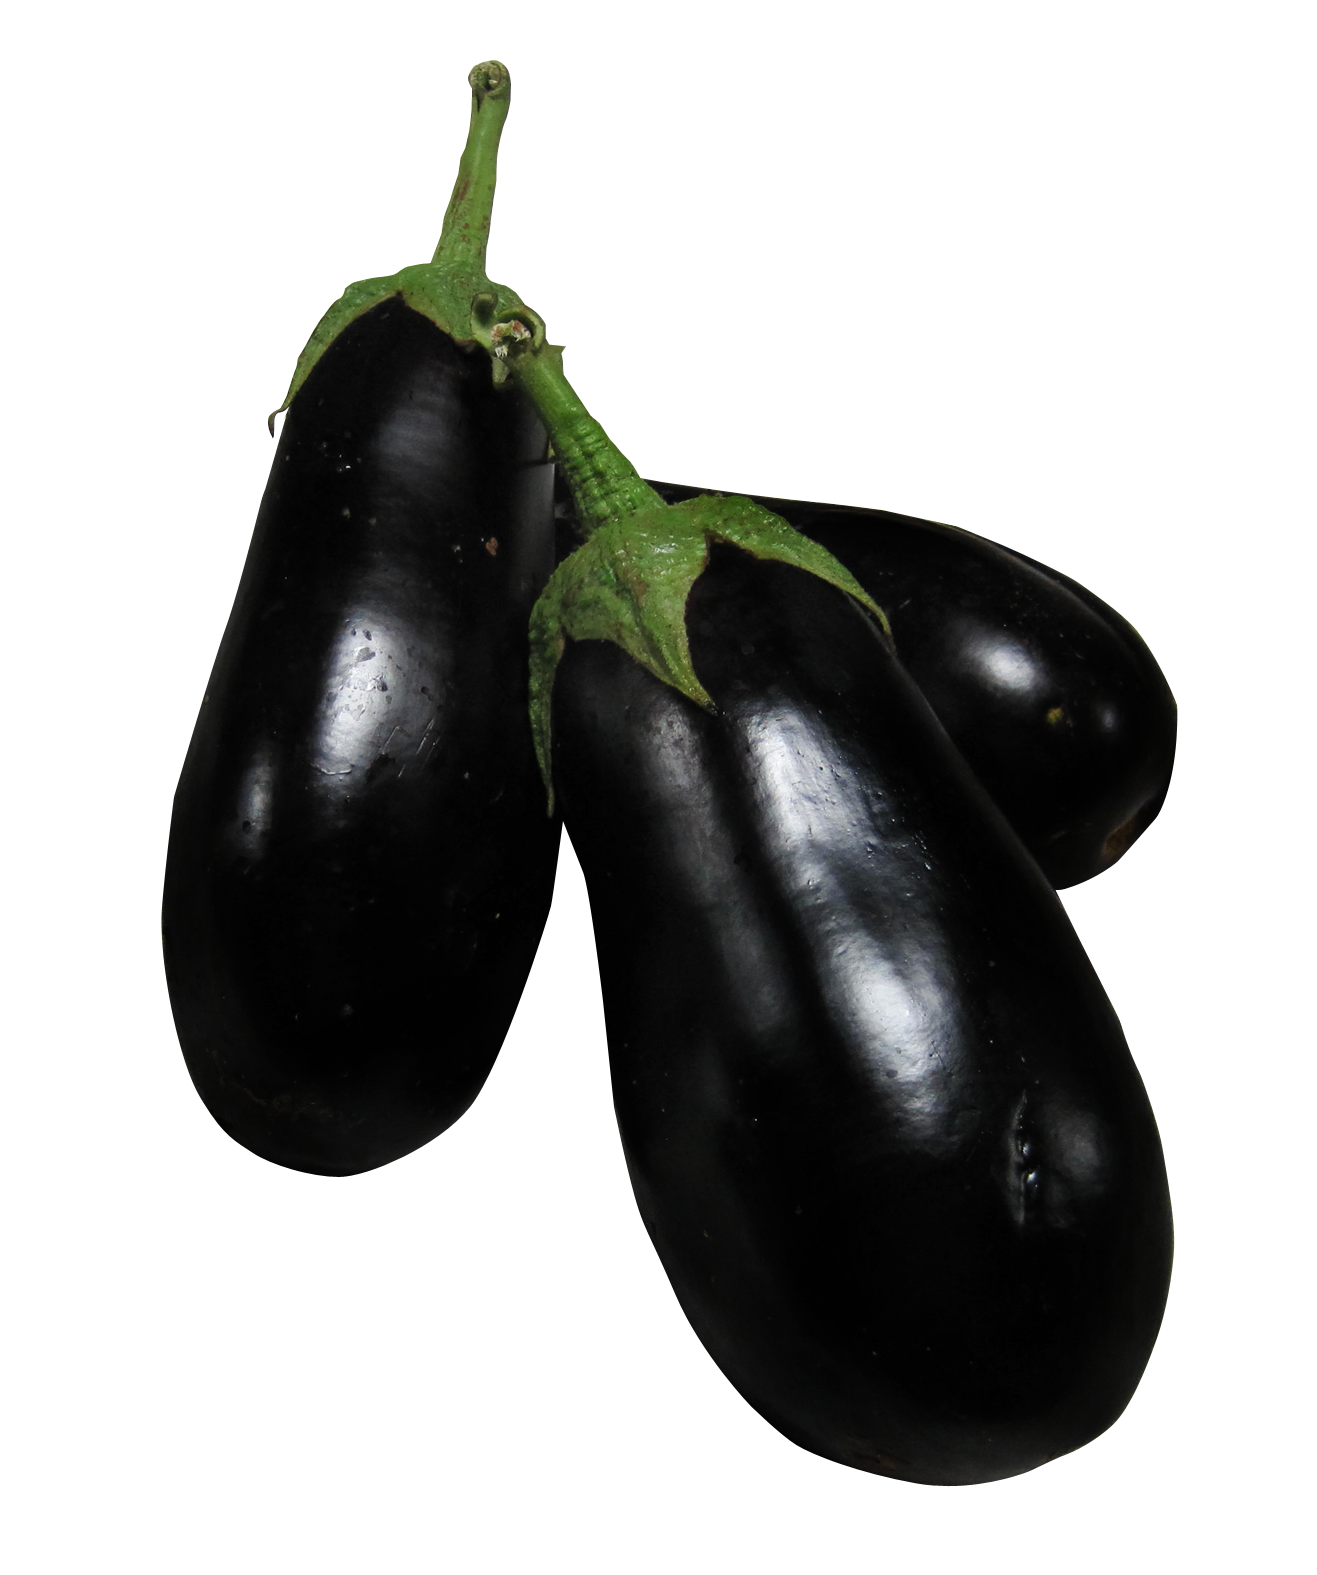 Garden clipart eggplant. Png image purepng free